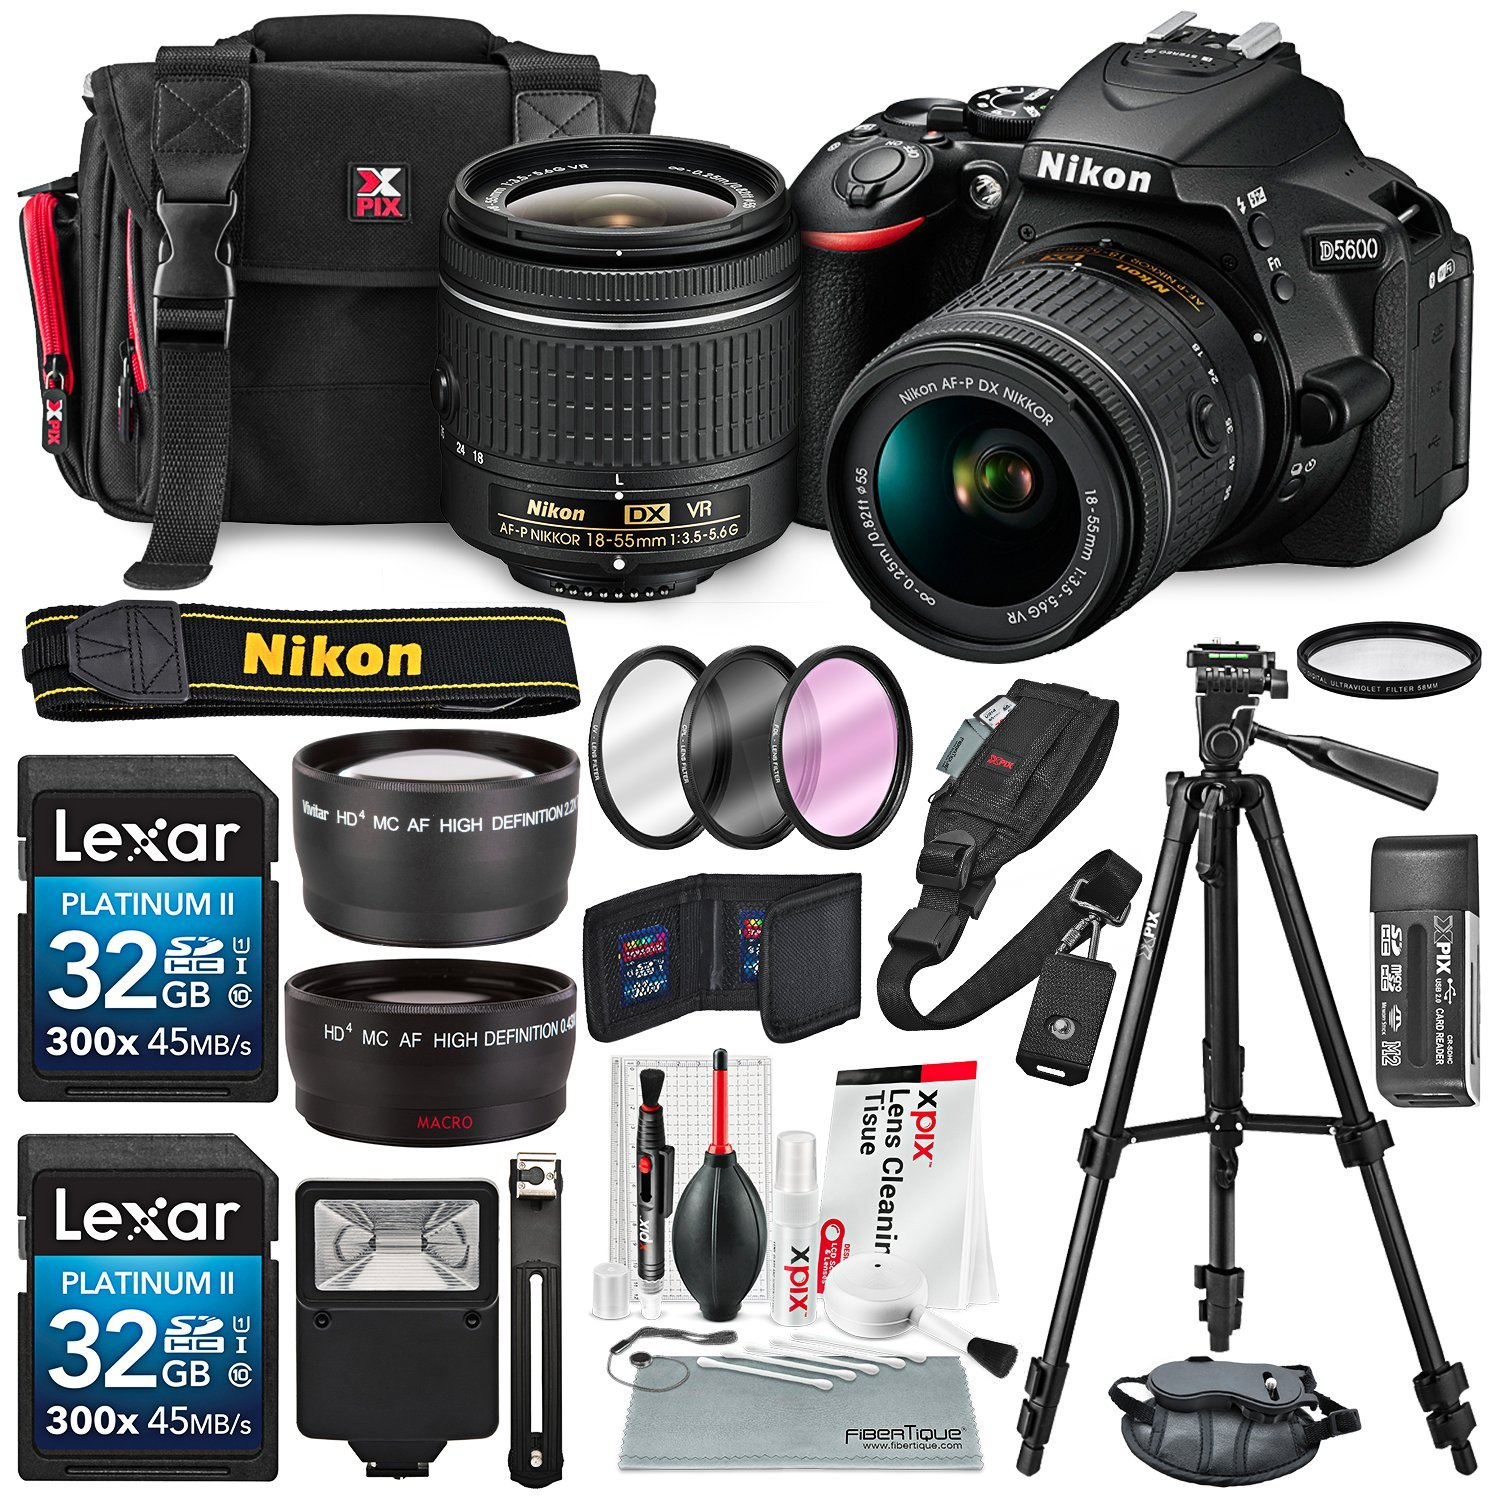 Nikon D5600 DSLR Camera with 18-55mm Lens W/ 2x 32GB Memory Card + Filters + 55mm Telephoto & Wide-Angle, Quick Release Shoulder Strap + Xpix Lens Handling Accessories with Deluxe Bundle by Photo Savings